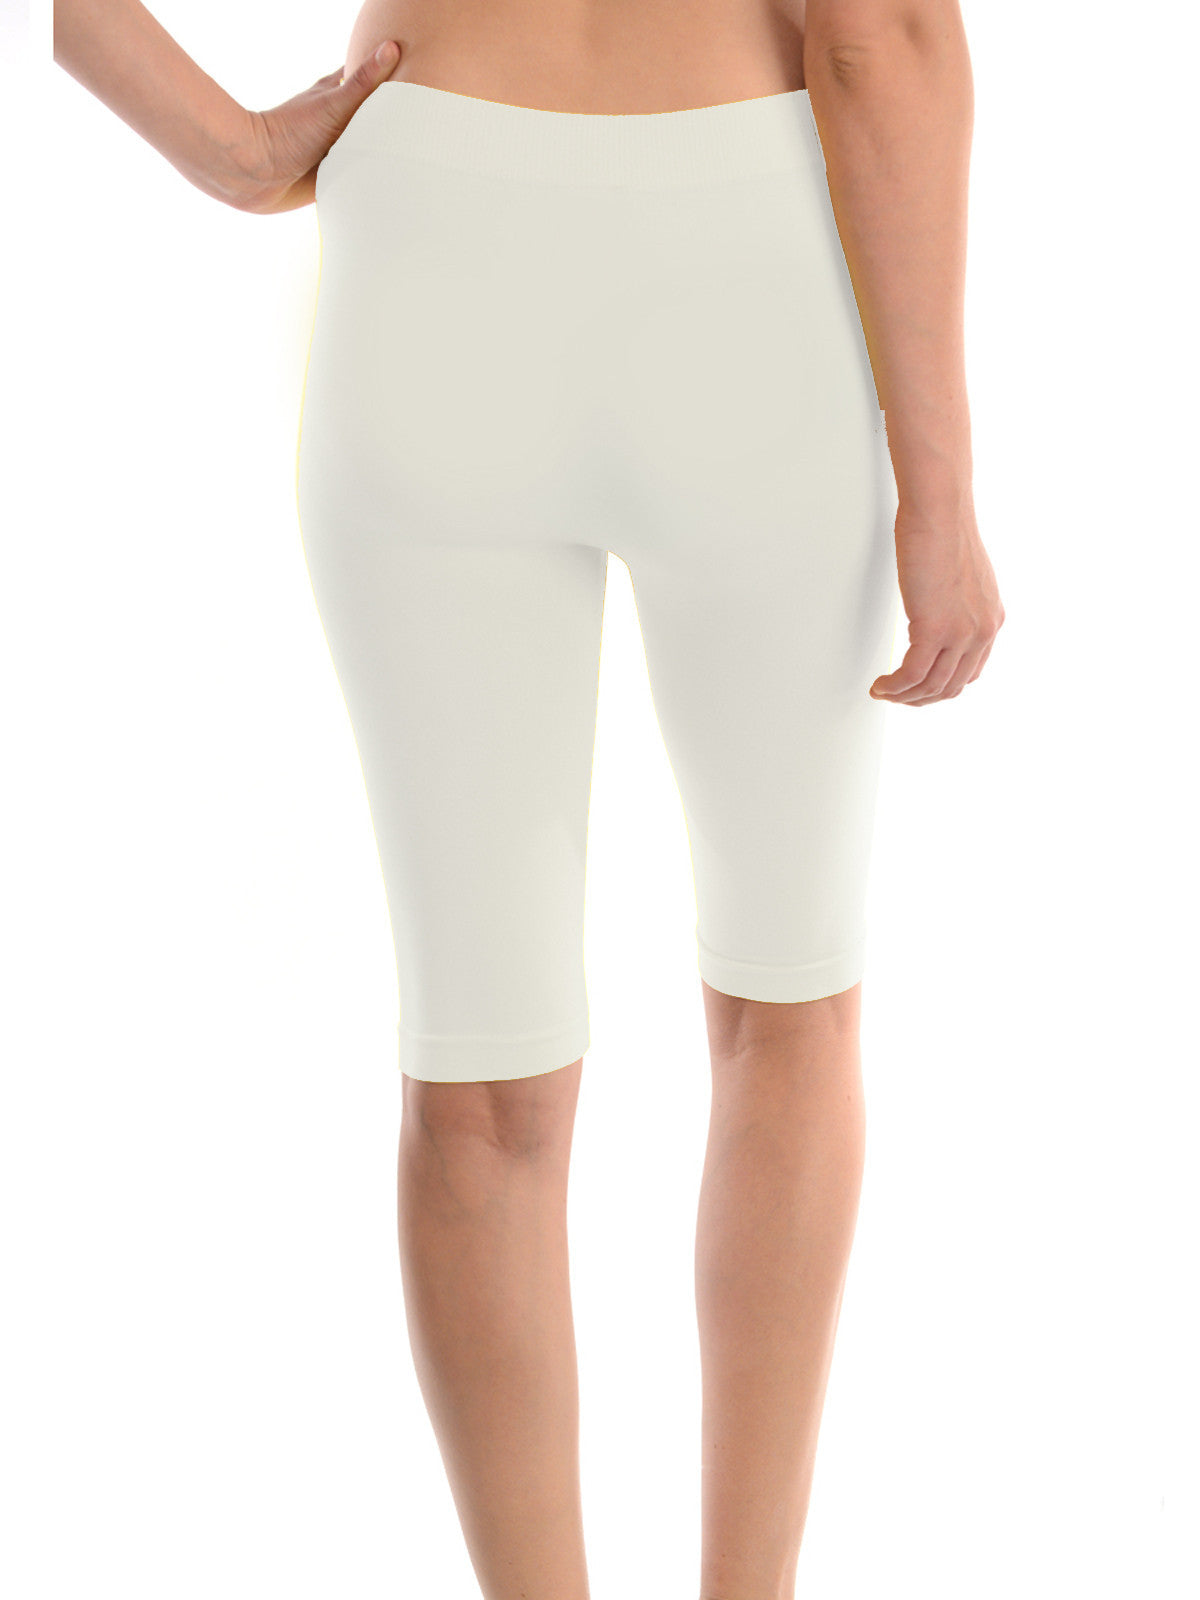 Spandex Yoga Capri Legging pants